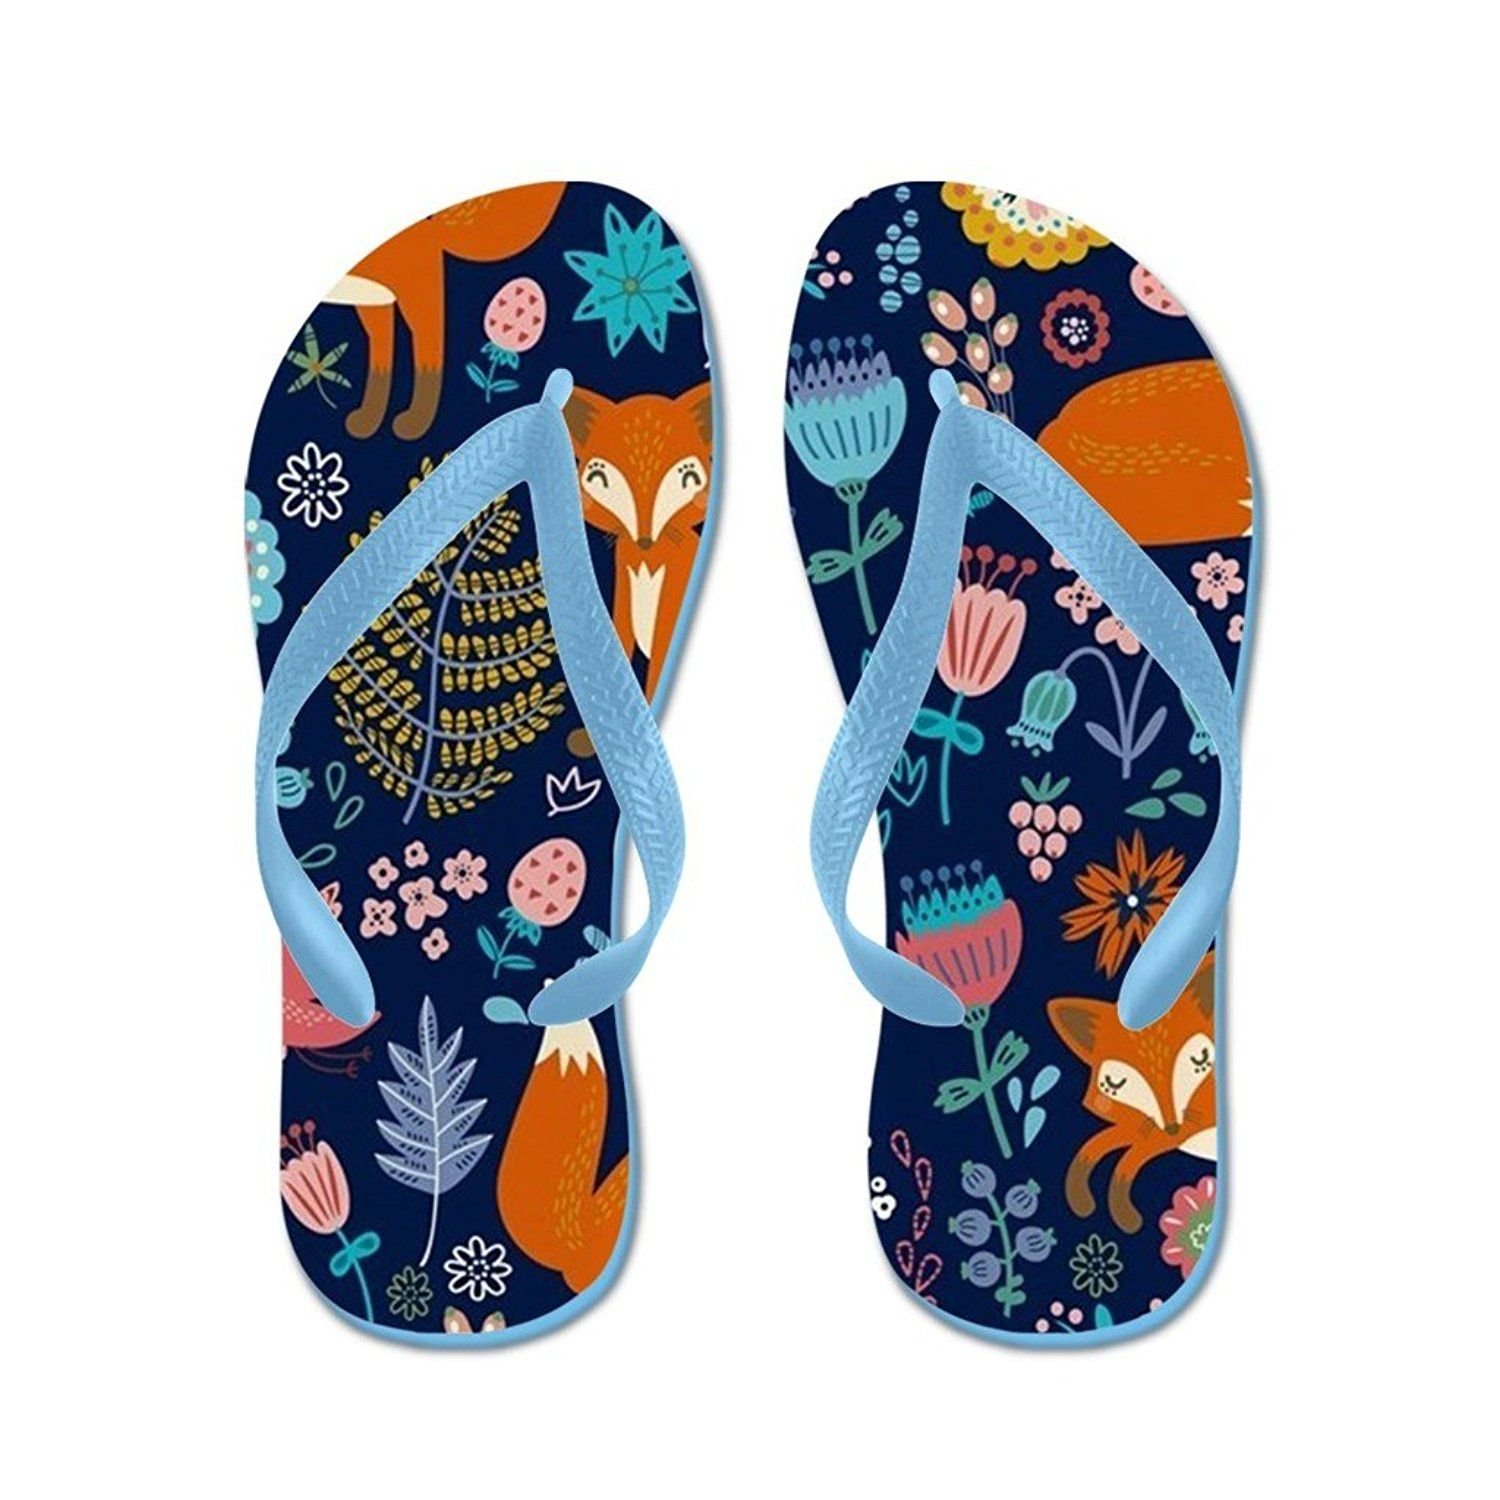 579d48d5c Lplpol Floral Cute Fox Pattern Flip Flops for Kids and Adult Unisex Beach  Sandals Pool Shoes Party Slippers ** Want additional info? Click on the  image.